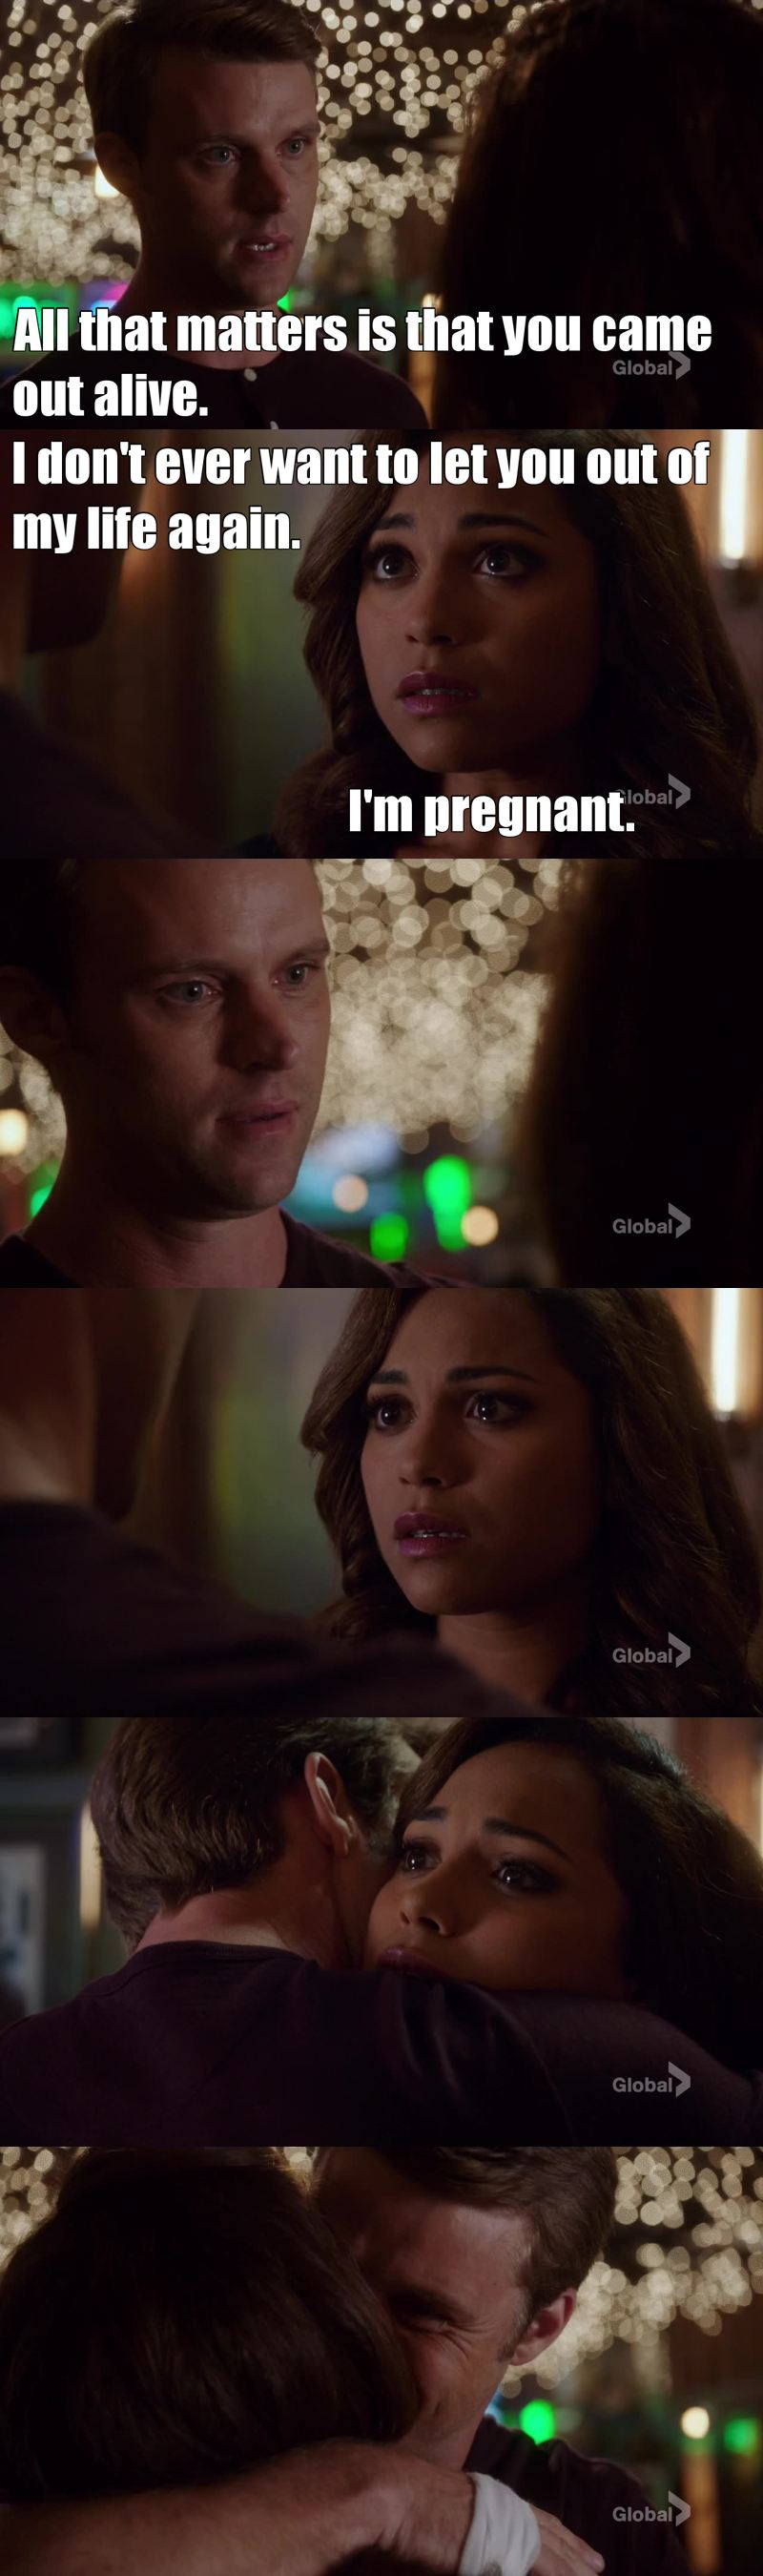 Dawsey is back!!!!!!! I've been waiting for a long time for that!!! Also, the song... I've been waiting for the happy-love song since he proposed!!!! I love Dawsey and they are the best part of this show!! Chicago Fire is my favorite show of all time!!! That Kelly-Matt scene?? I love Dawsey, my favorite OTP, that I needed back... Their back!!!!!!!!! I was so happy I cried of joy!!!!!!!!!!! Anyone else feel like that? #DawseyIsBack #MyOtpIsBack #Love+Joy #DawseyForever